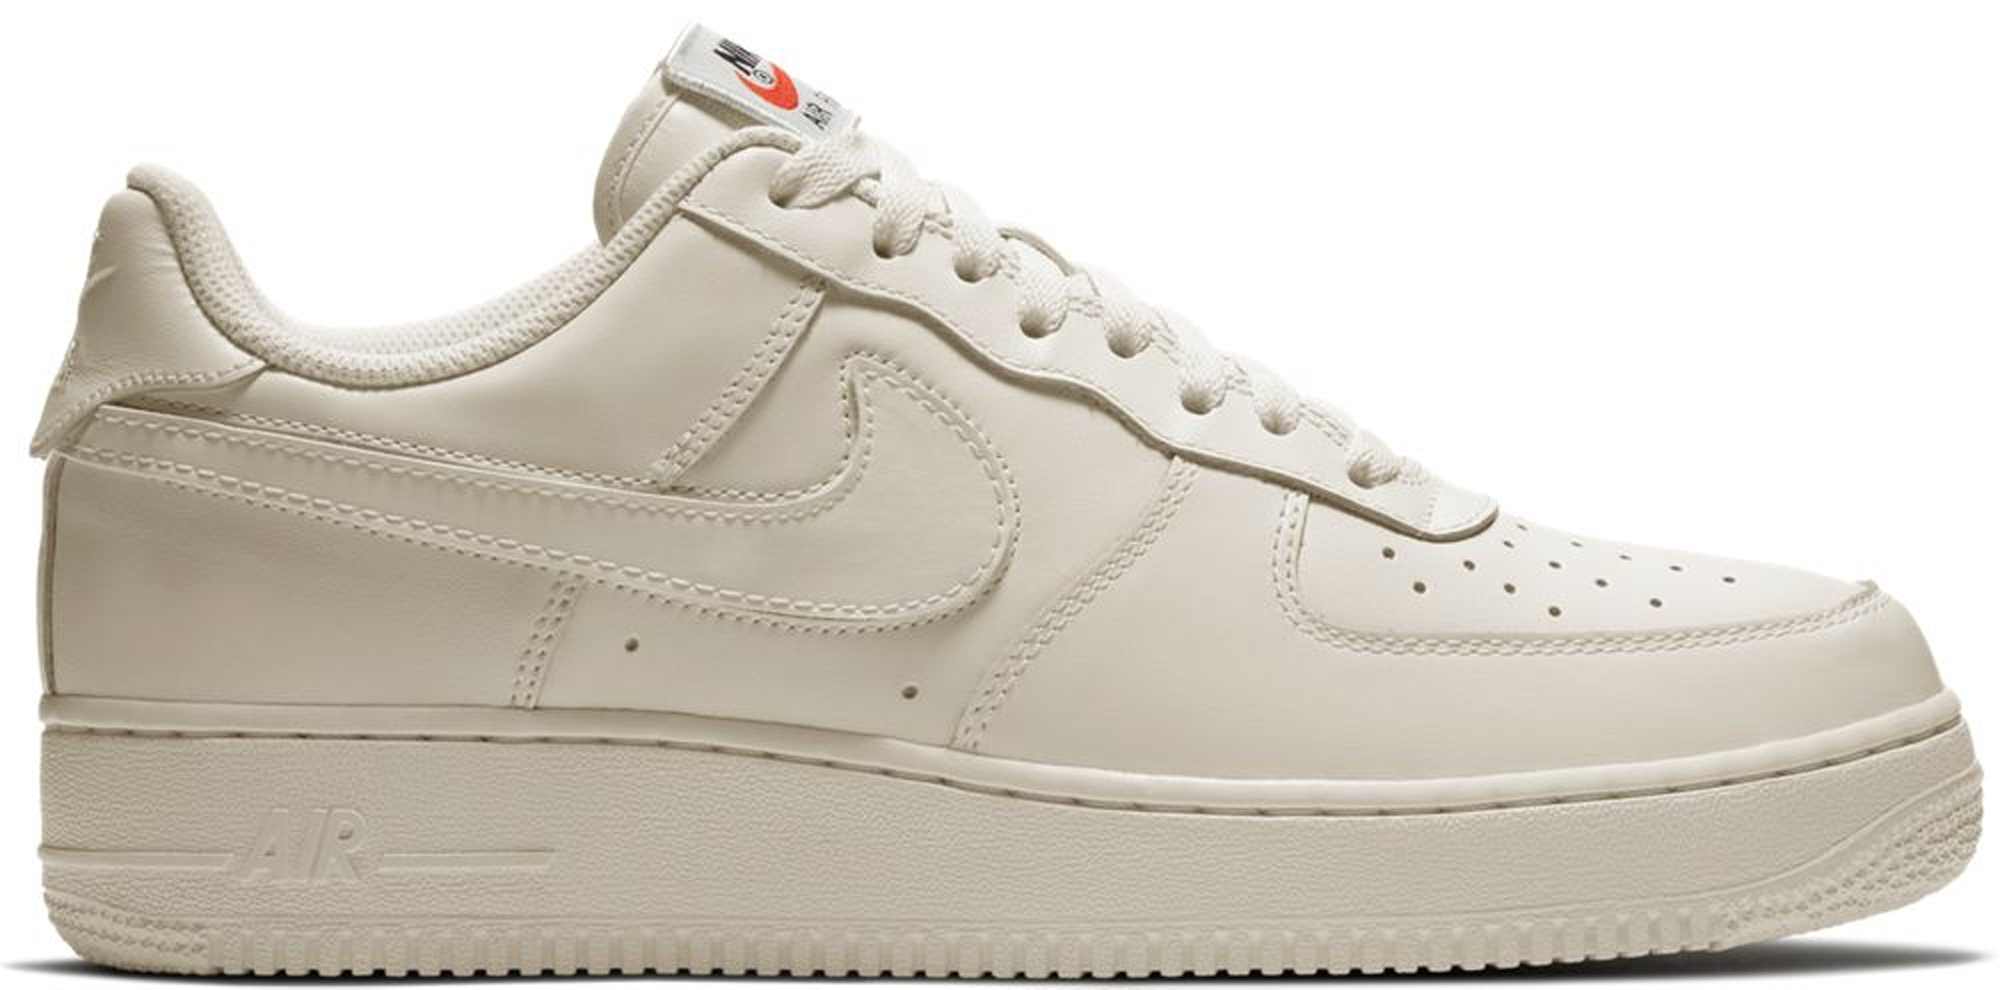 nike air force 1 swoosh pack sailboats